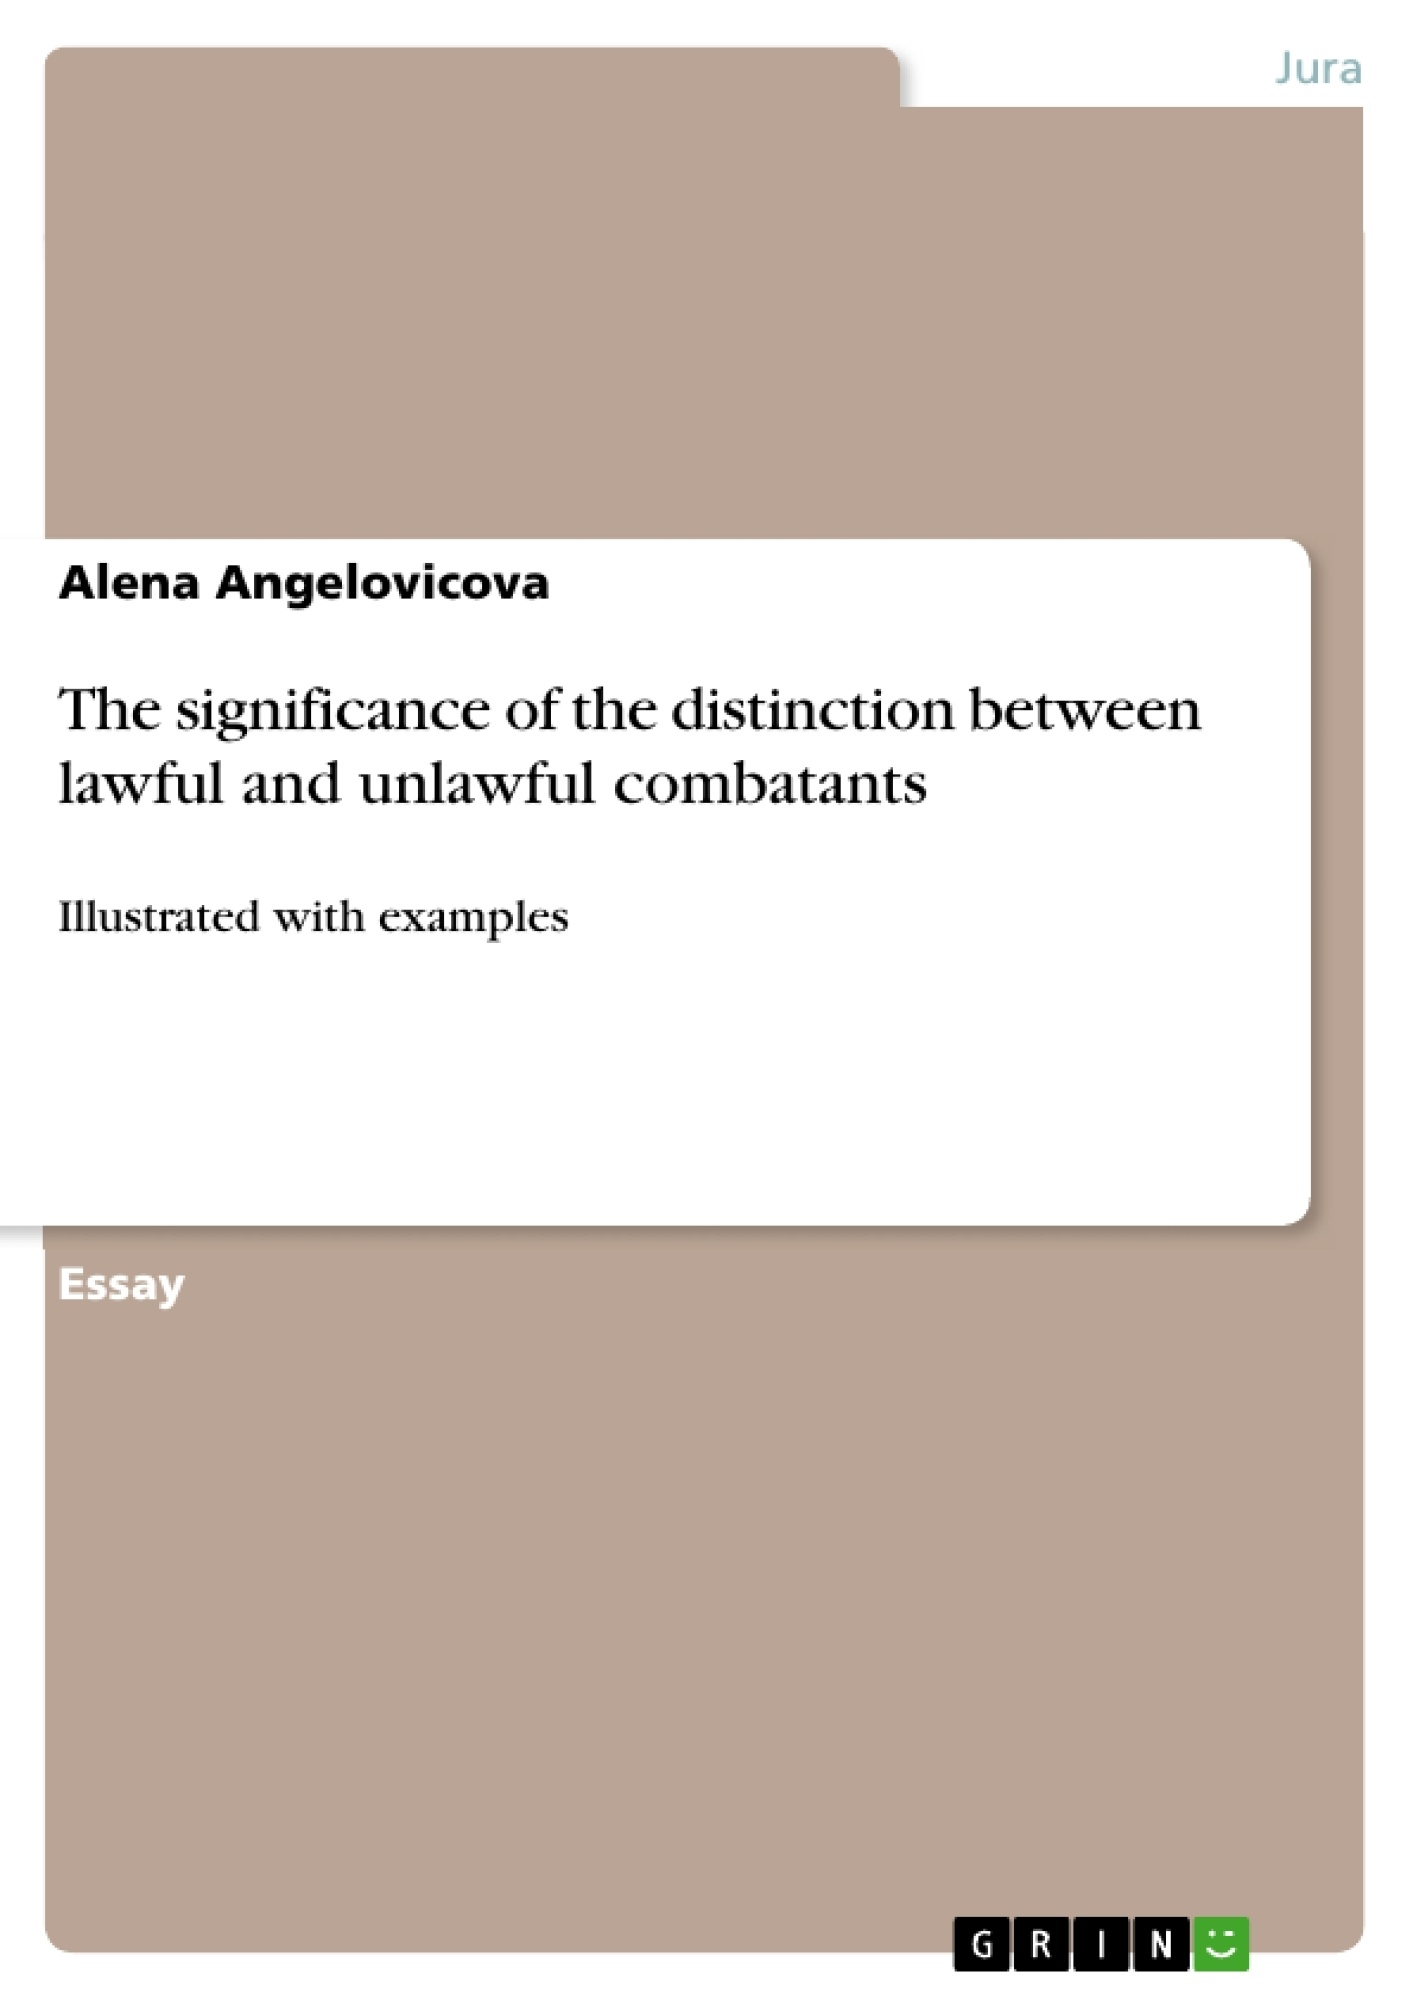 Titel: The significance of the distinction between lawful and unlawful combatants